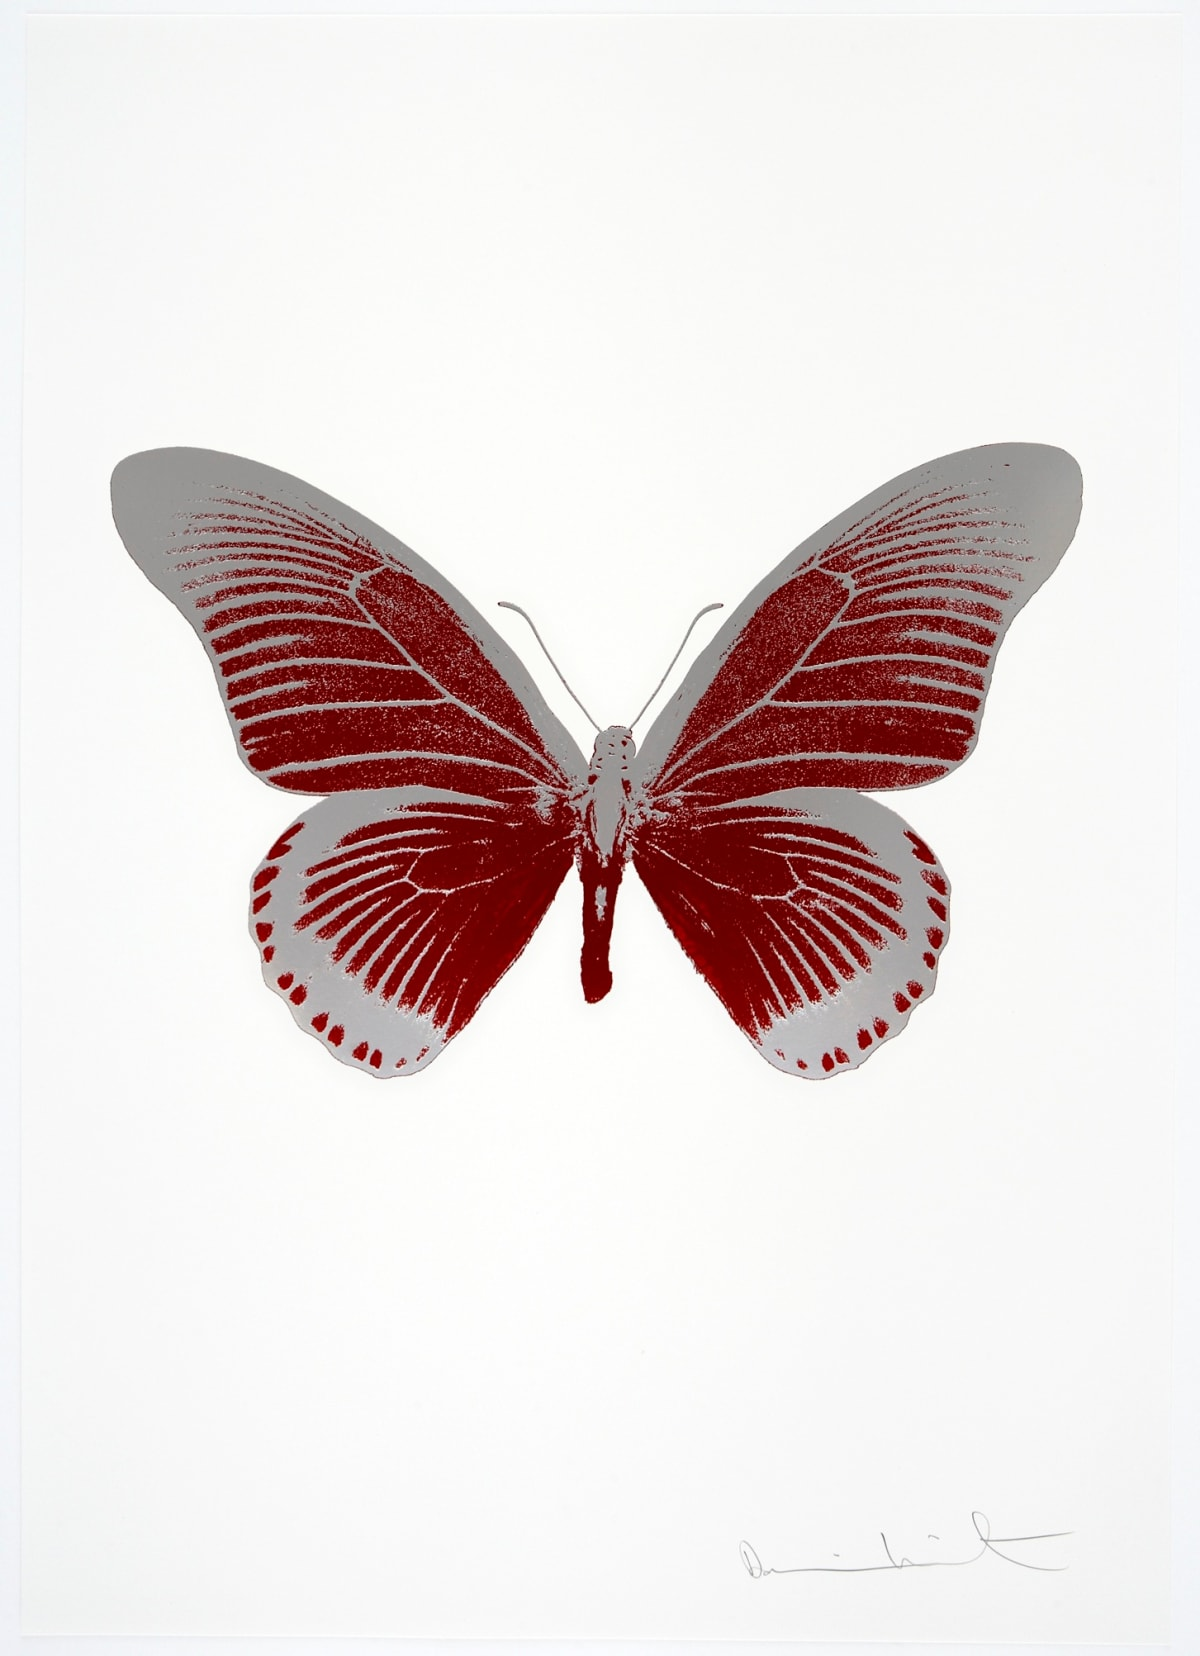 Damien Hirst The Souls IV - Chilli Red/Silver Gloss Damien Hirst butterfly foil print for sale Damien Hirst print for sale , 2010 2 colour foil block on 300gsm Arches 88 archival paper. Signed and numbered. Published by Paul Stolper and Other Criteria 72 x 51cm OC8015 / 1418-38 Edition of 15